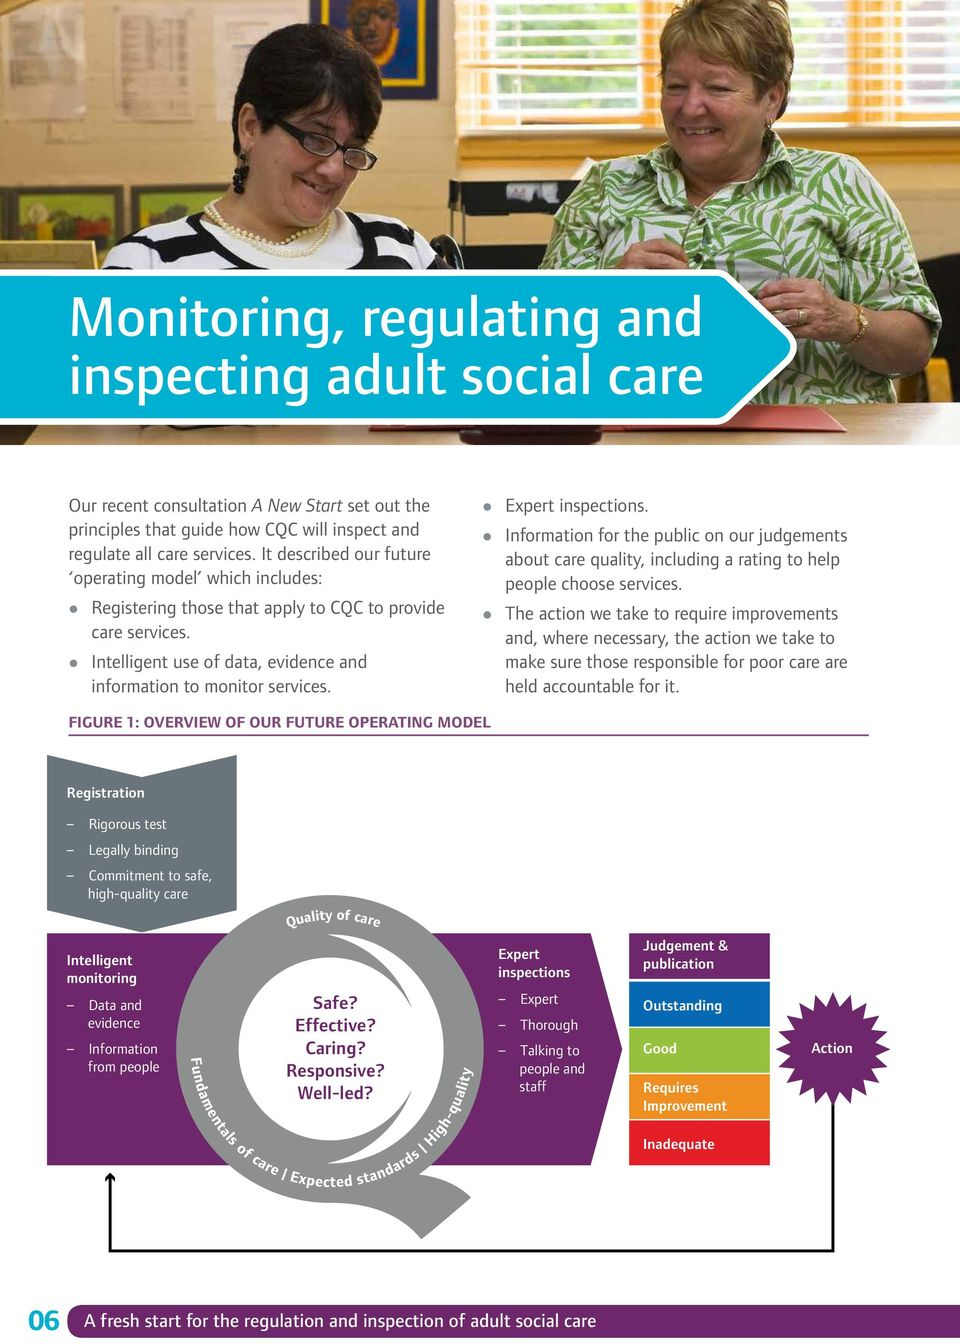 z Expert inspections. z Information for the public on our judgements about care quality, including a rating to help people choose services.